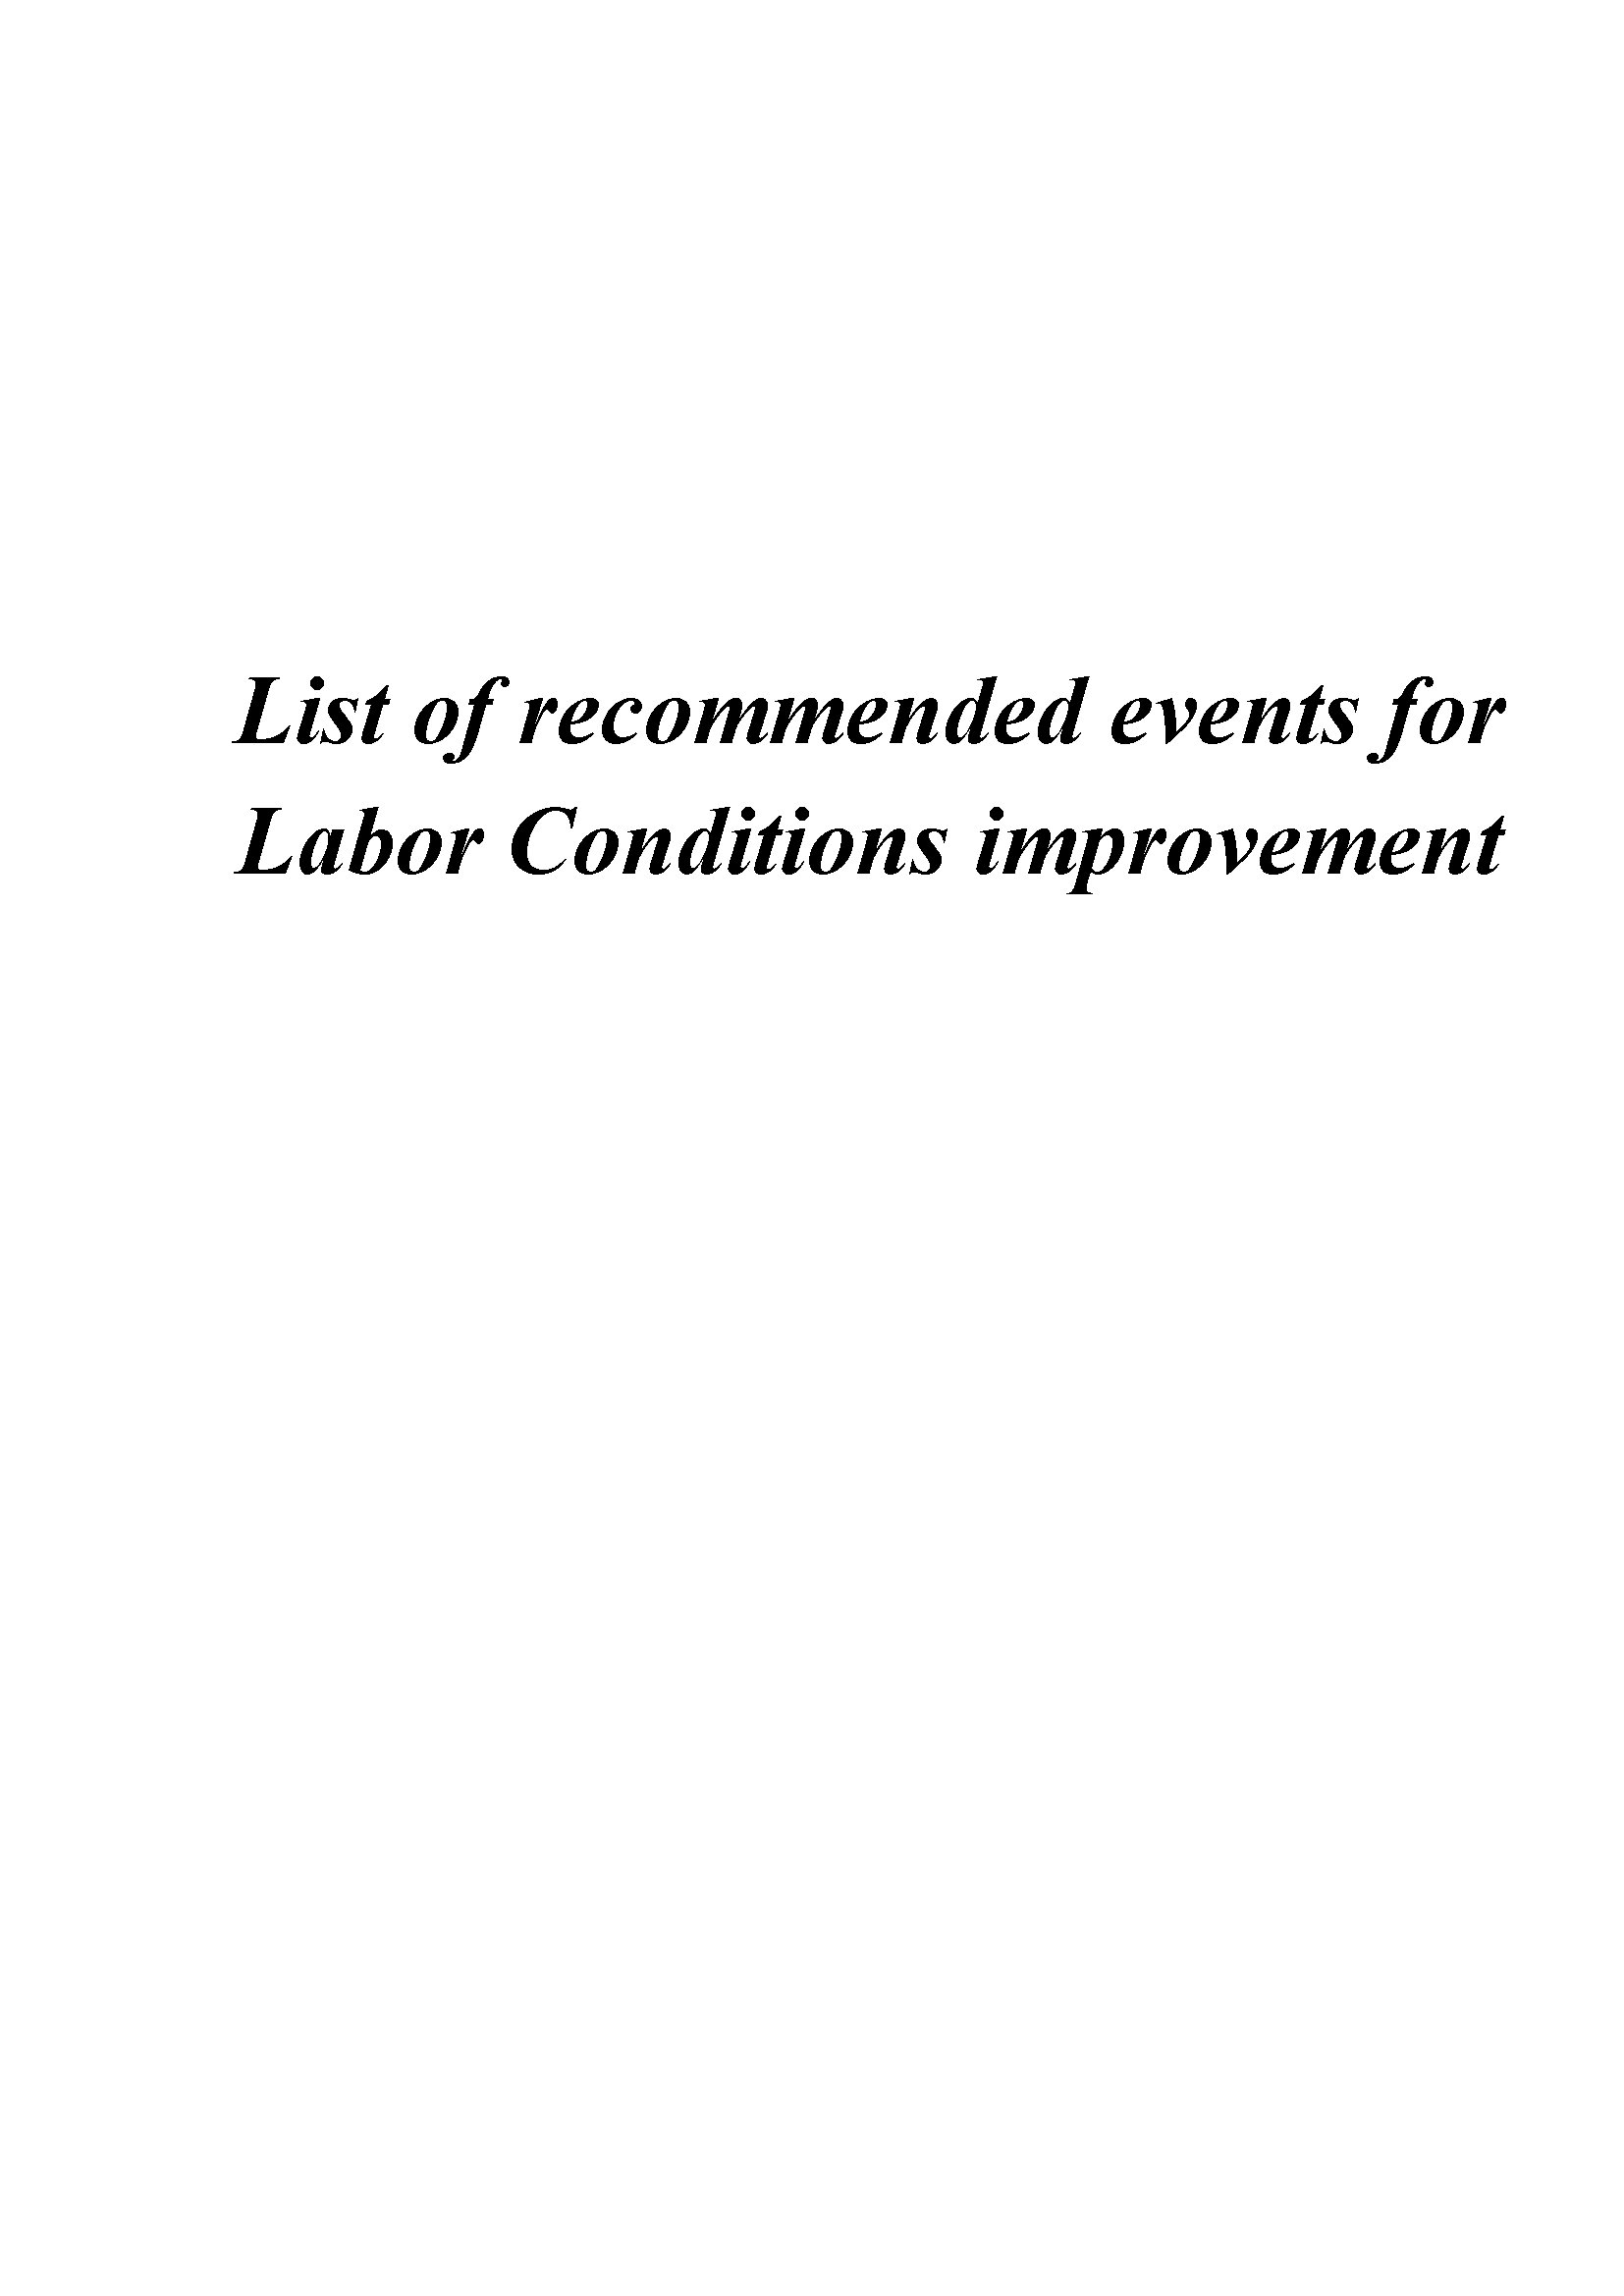 List of recommended events for Labor Conditions improvement